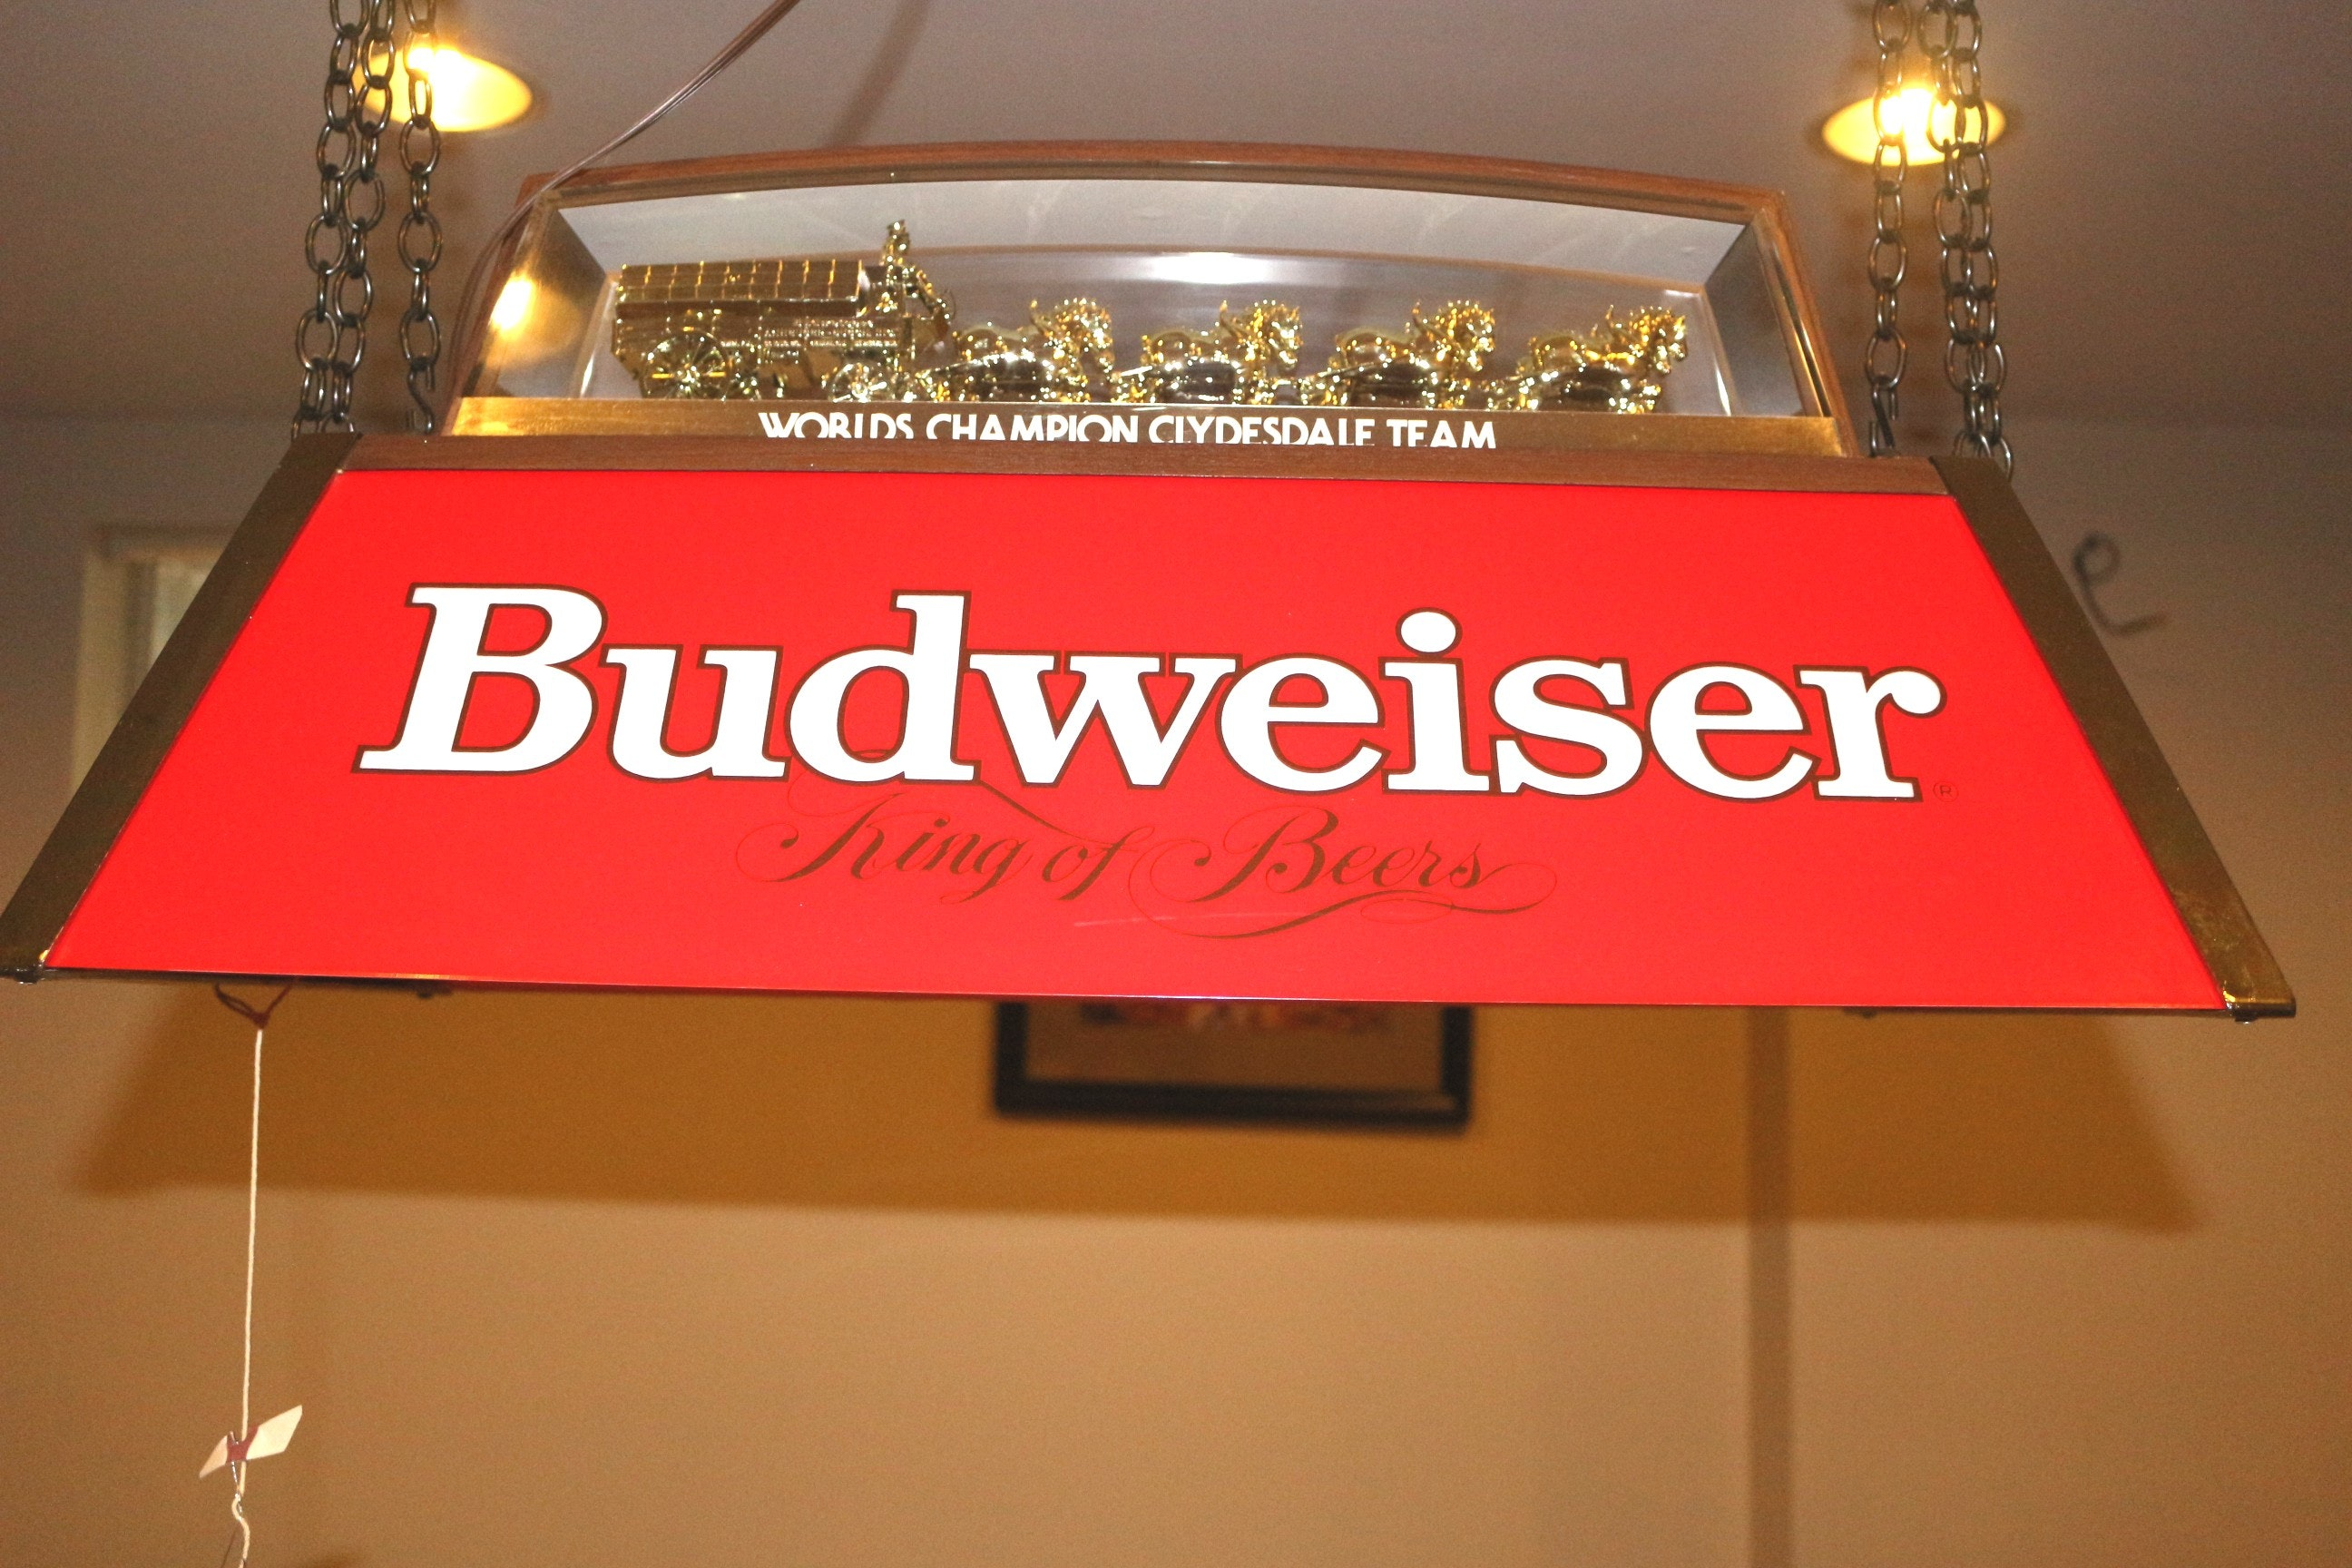 Budweiser Clydesdale Pool Table Light ...